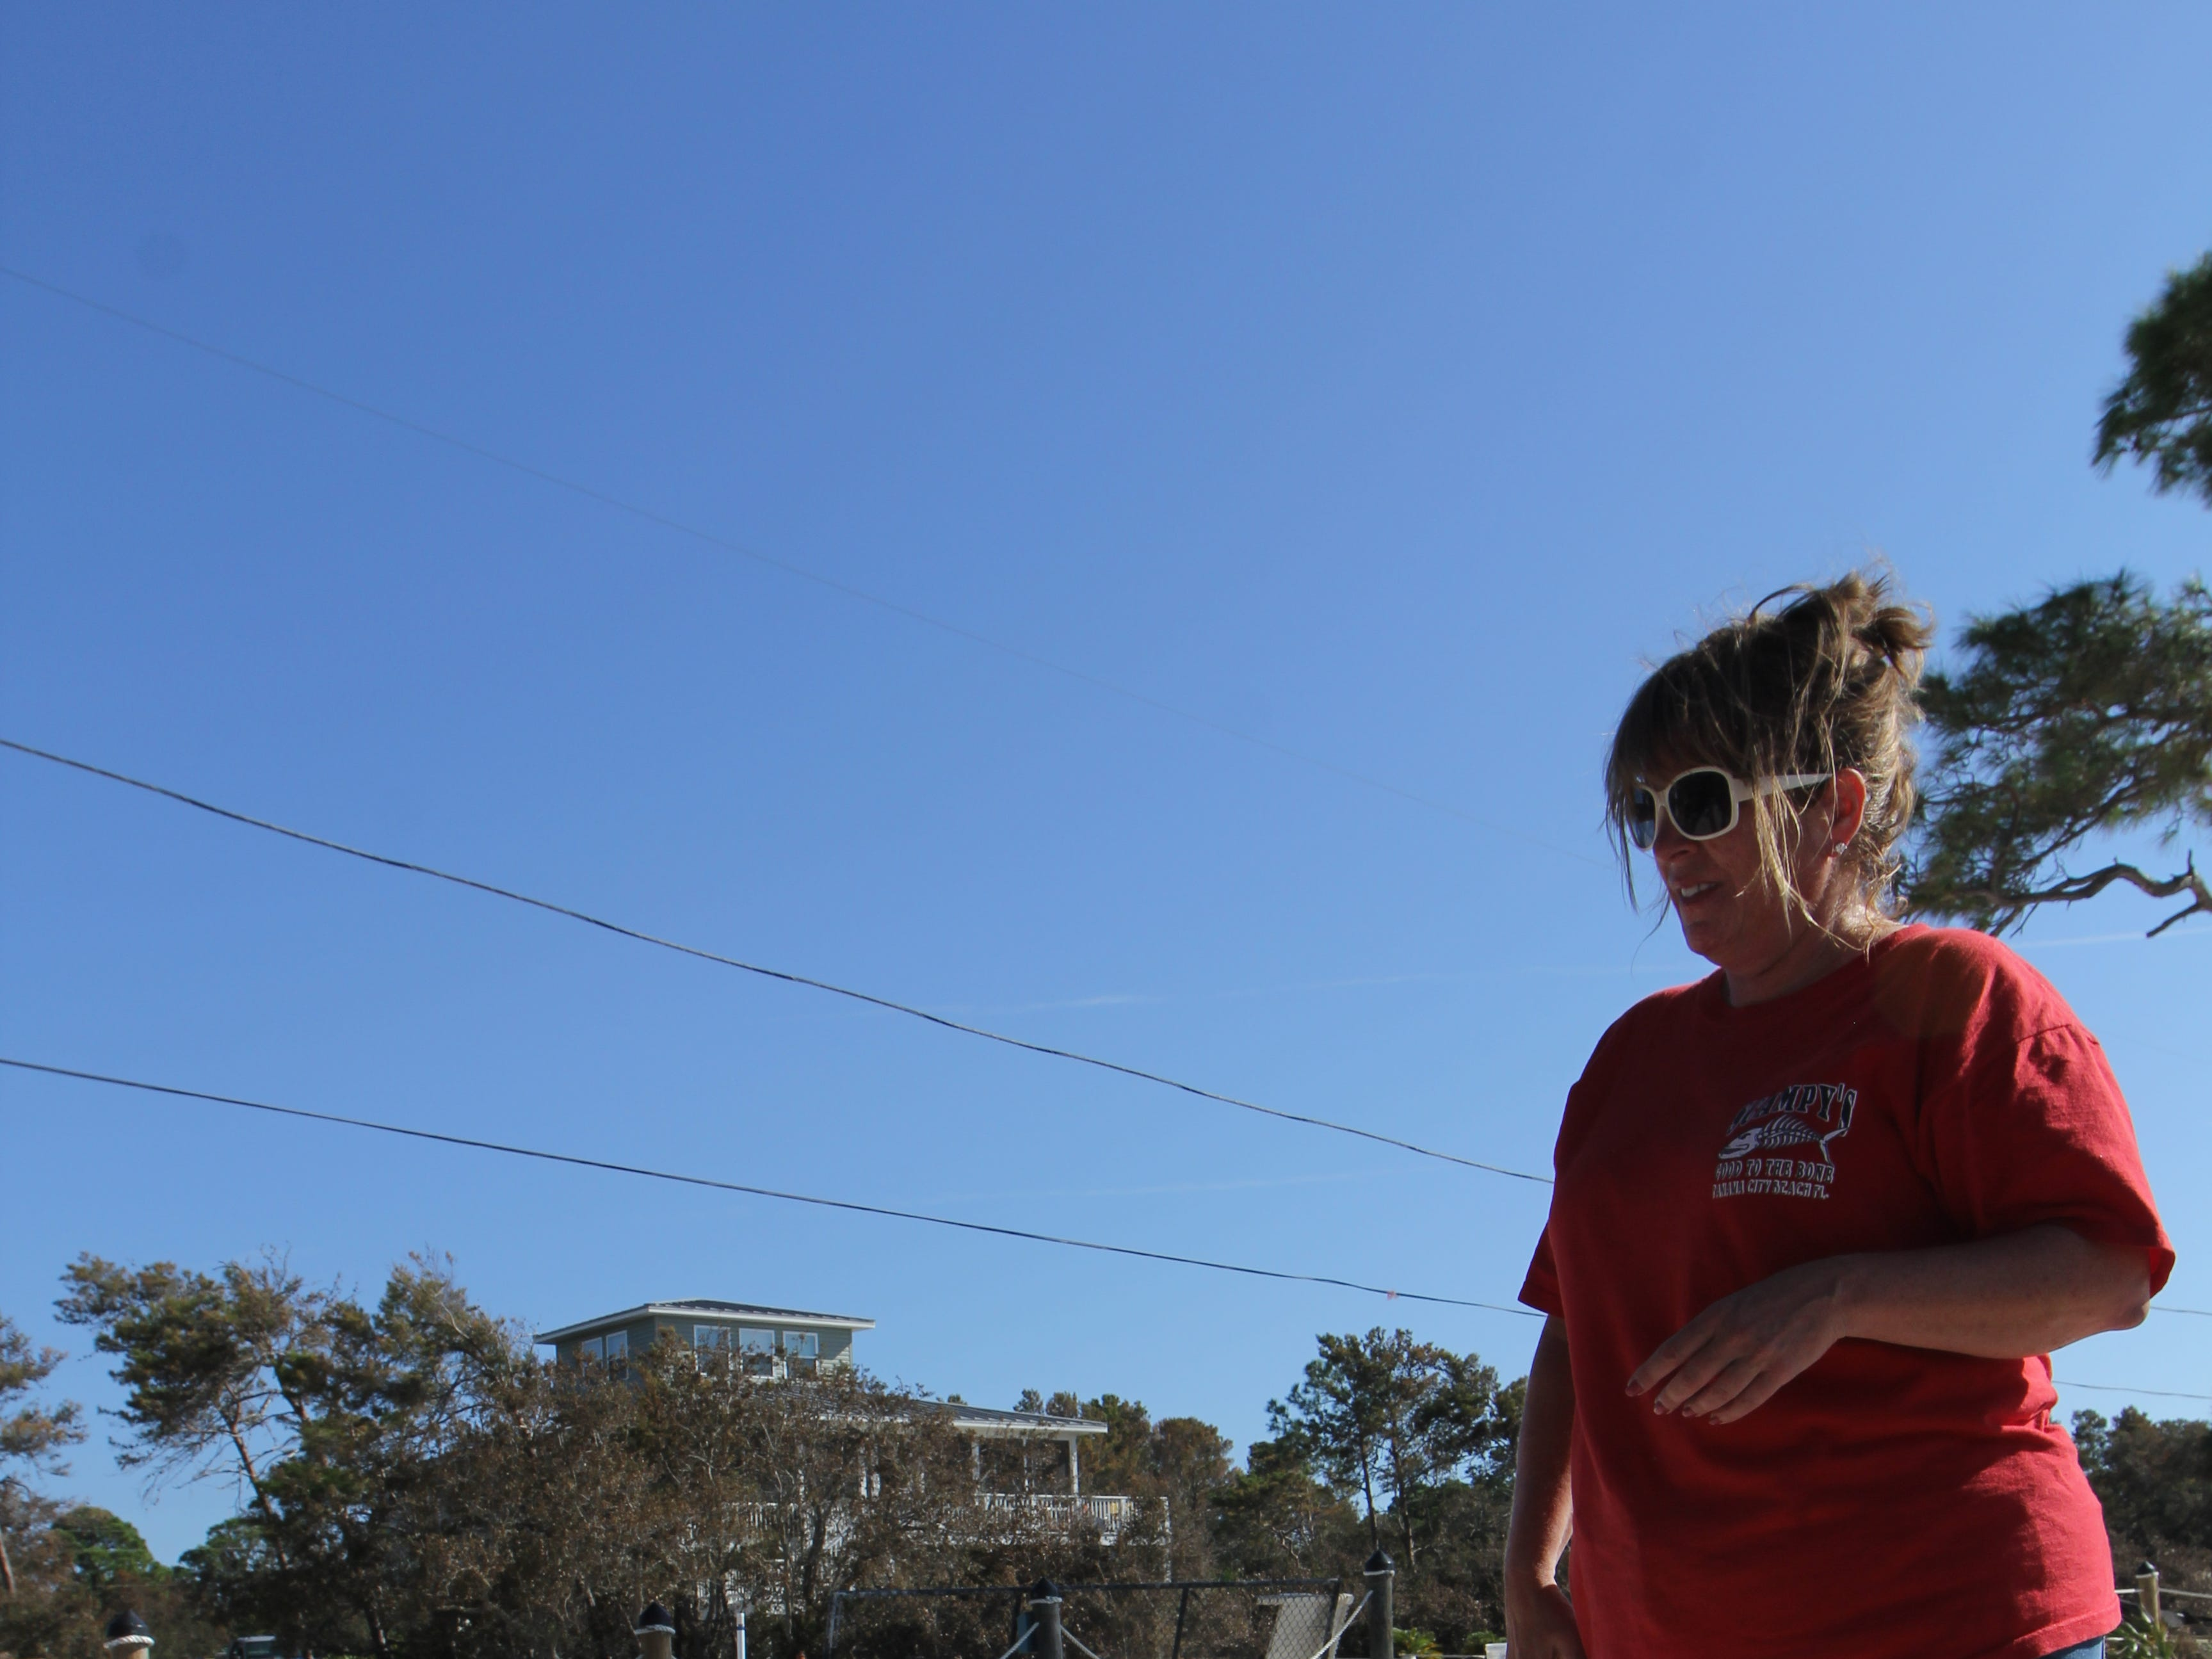 Tonia McNabb looks at the washer from her house on Alligator Point. It lies submerged beneath sand